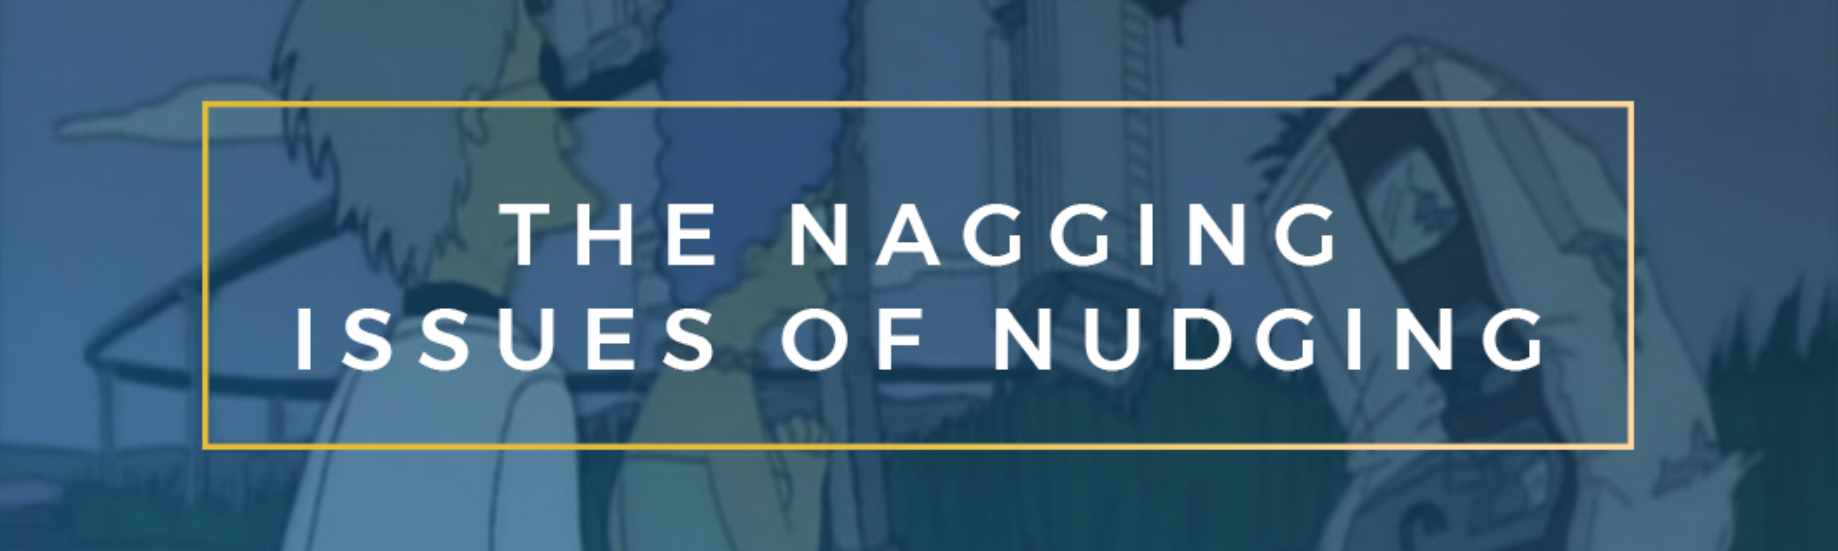 The Nagging Issues of Nudging - Practical Motivation Science - Medium